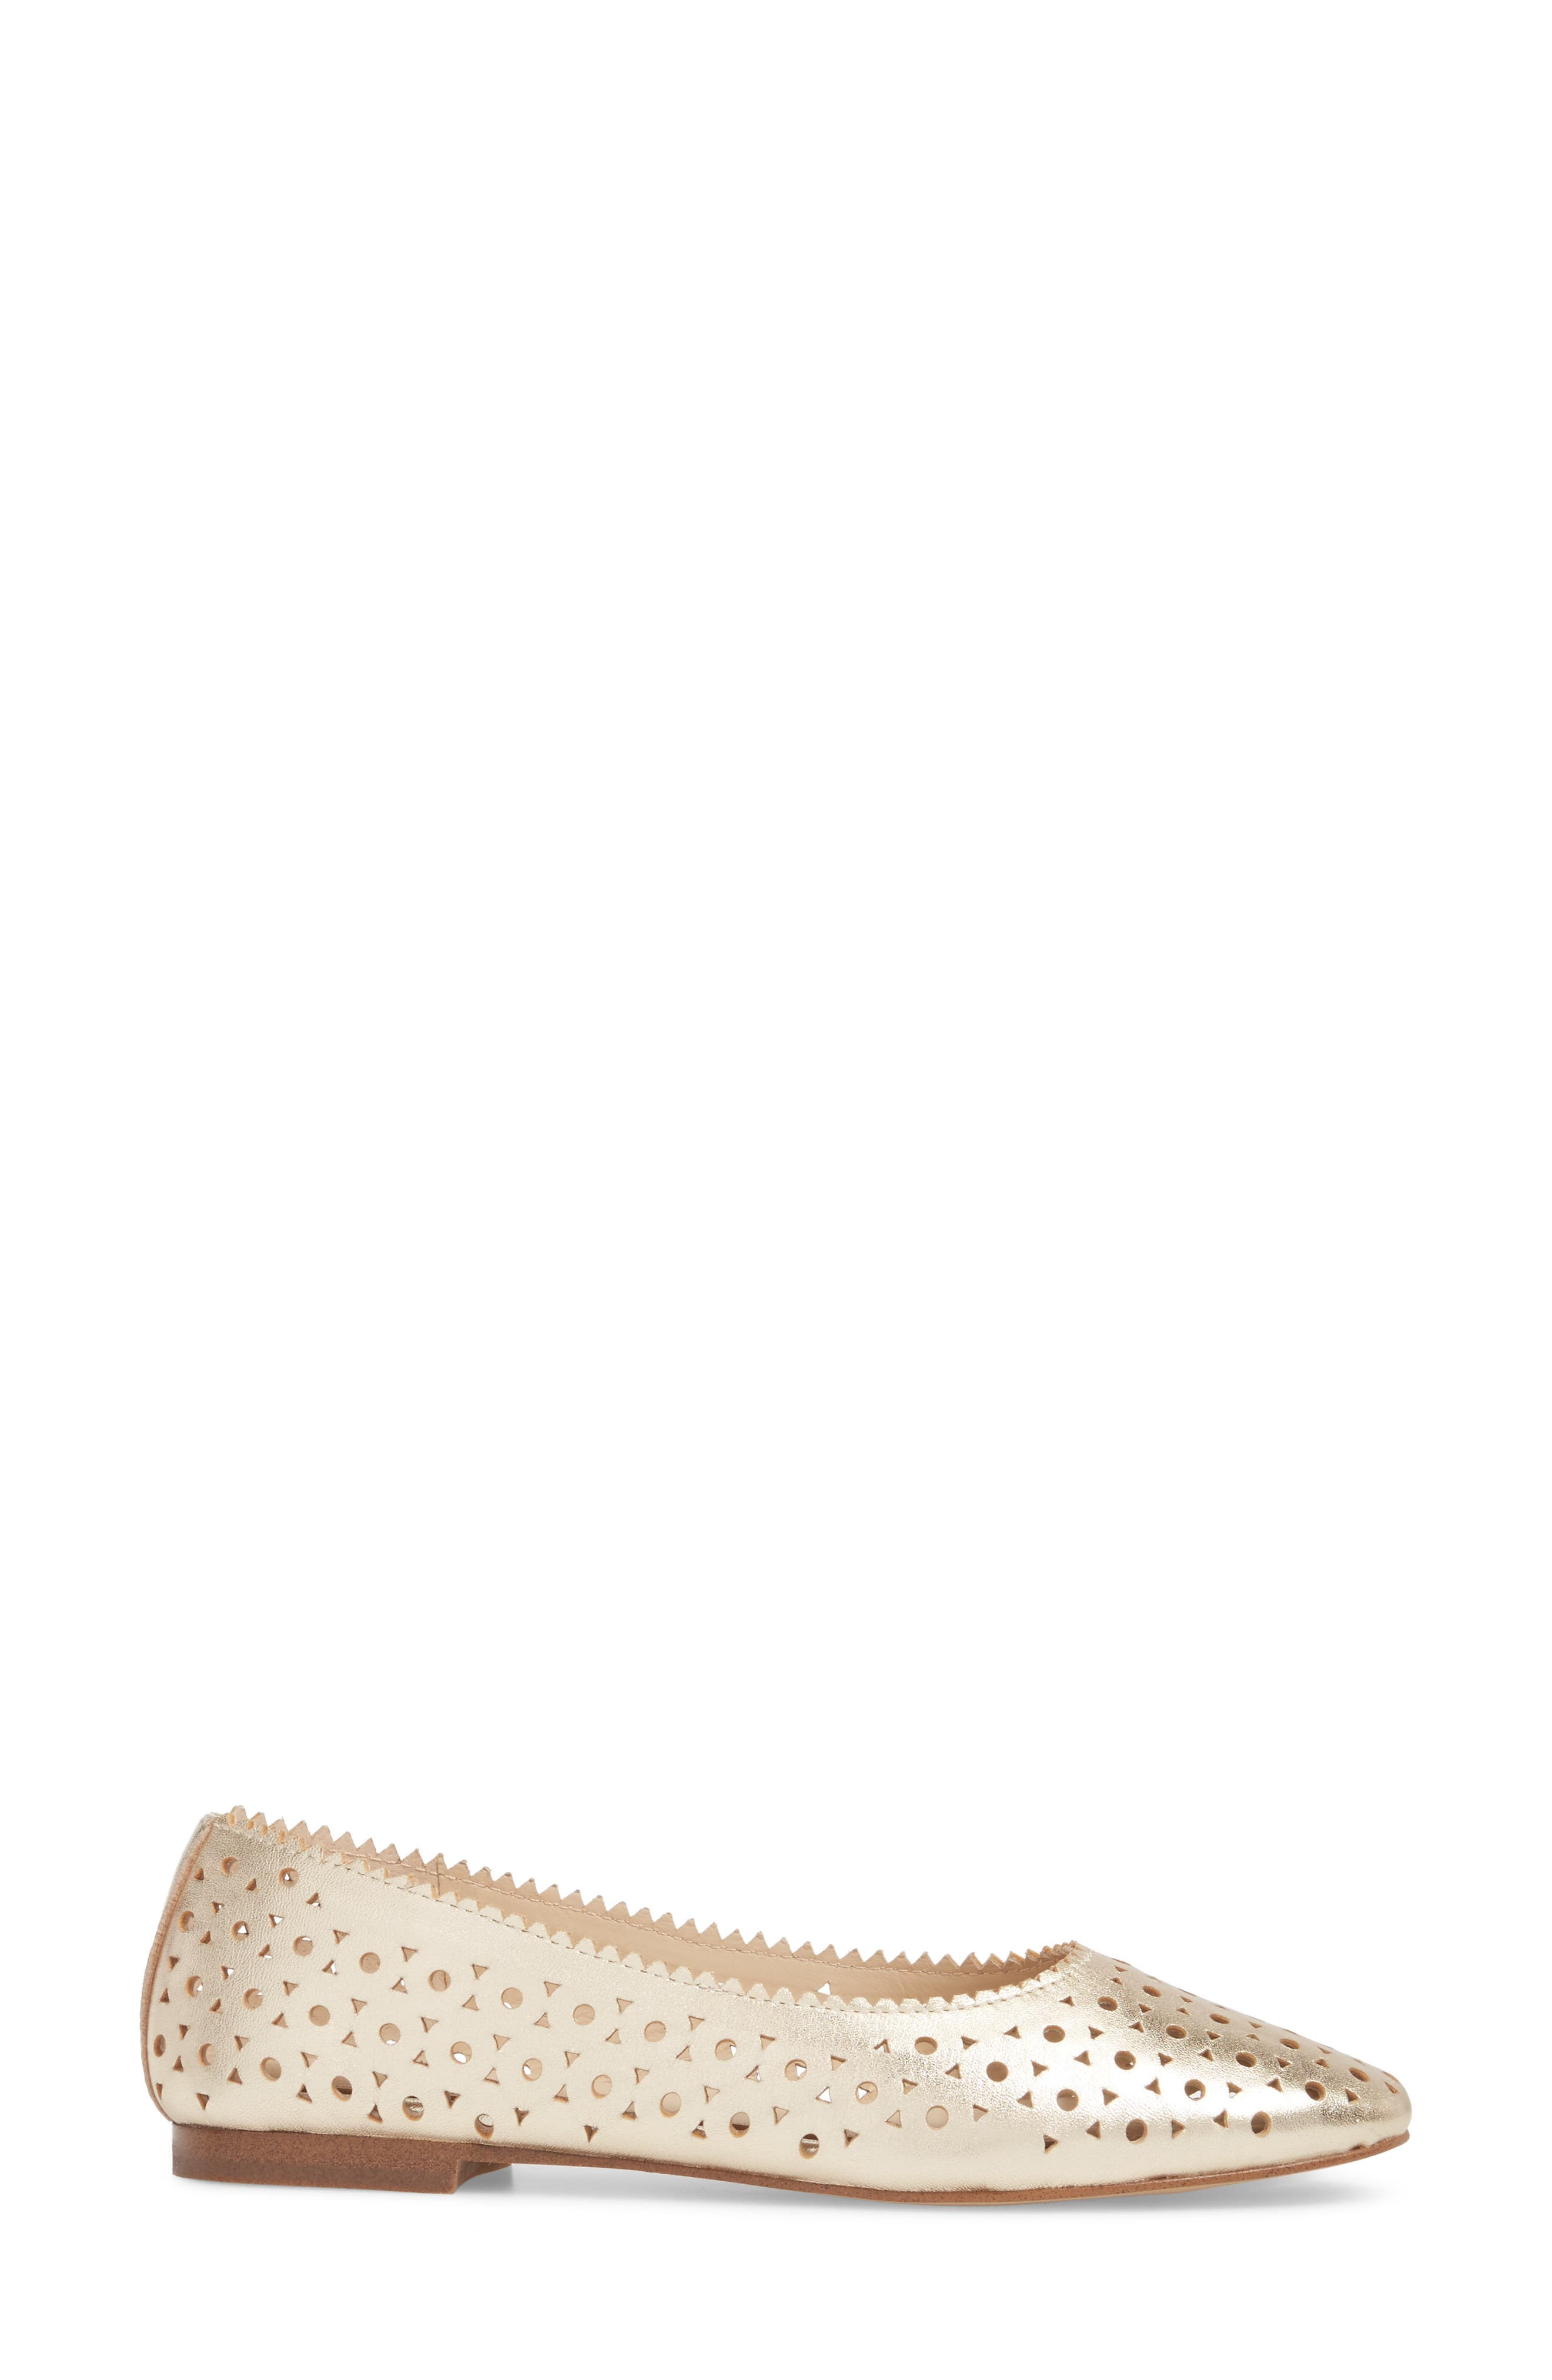 Mandy Flat,                             Alternate thumbnail 3, color,                             Metallic Ivory Leather